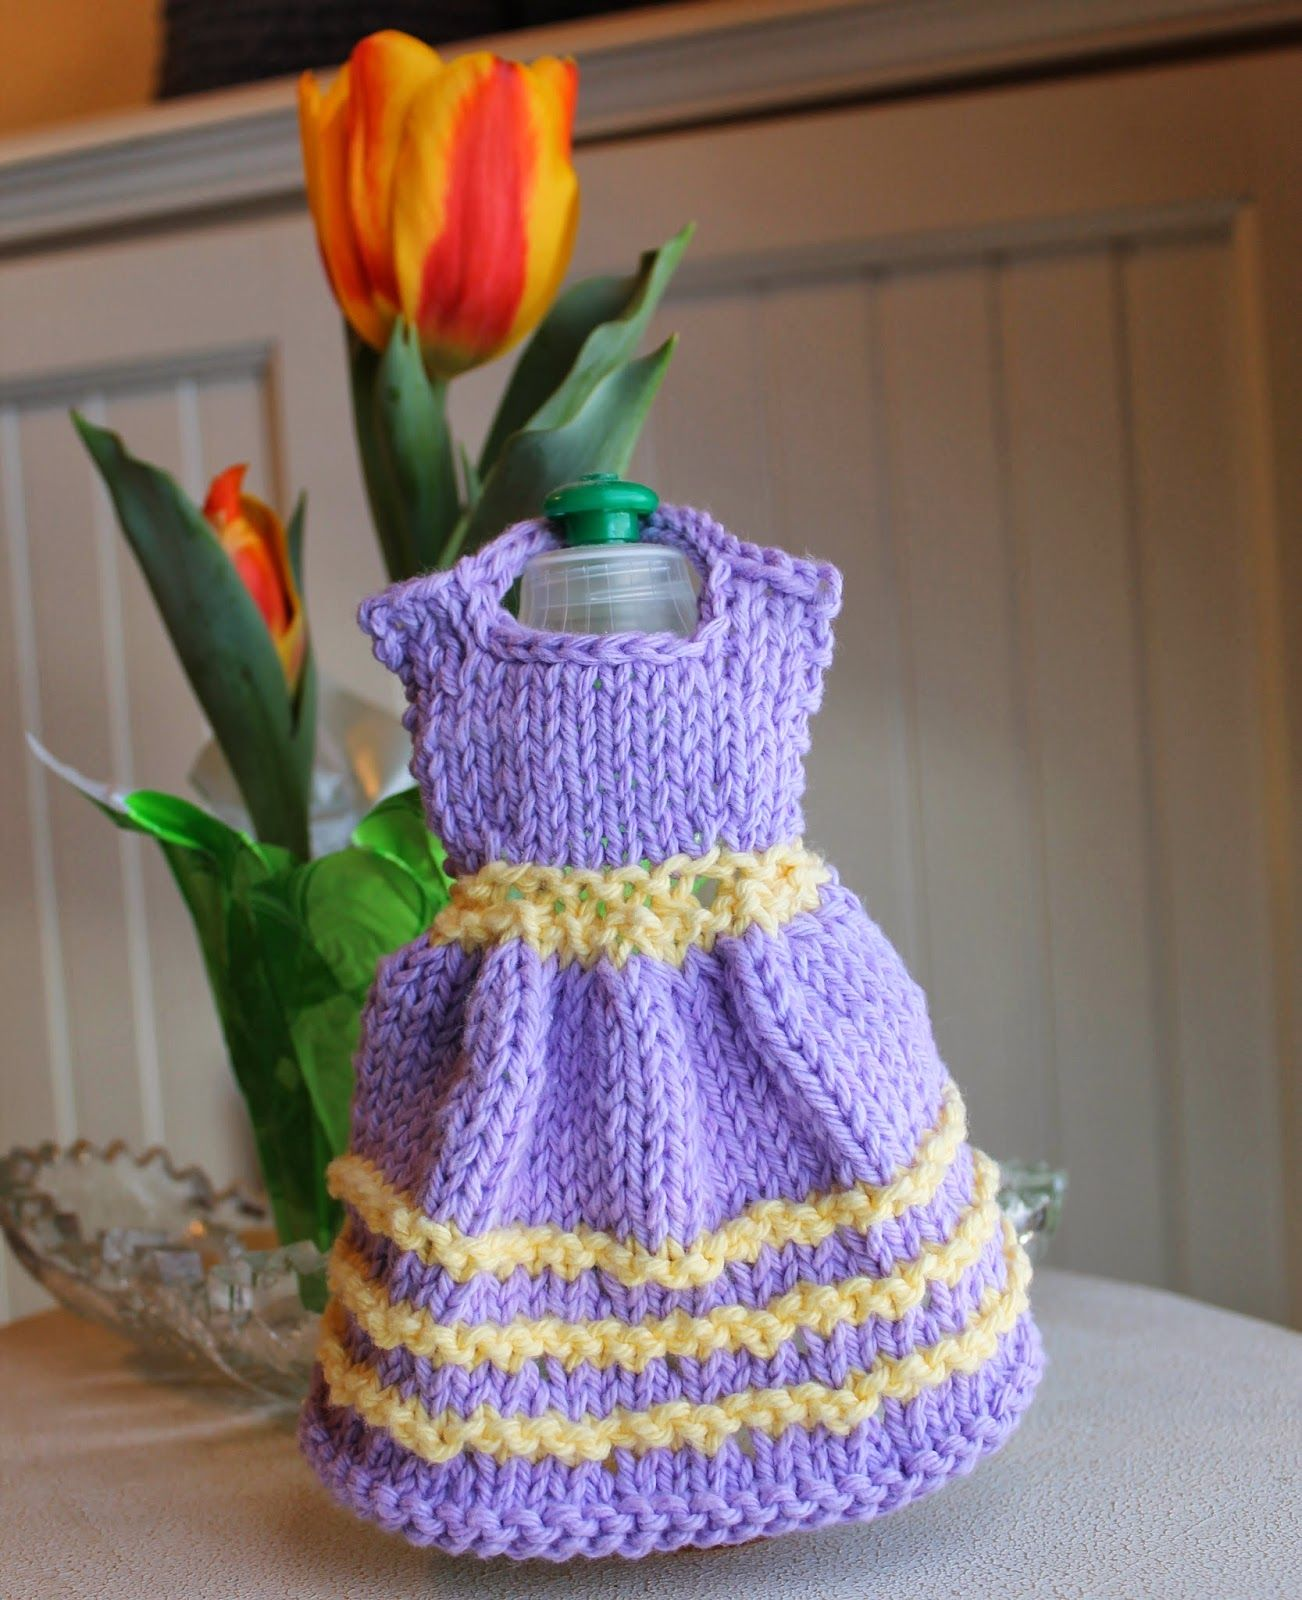 Knitting and Sewing My Way Through Life: Wishing All a Happy Mothers ...